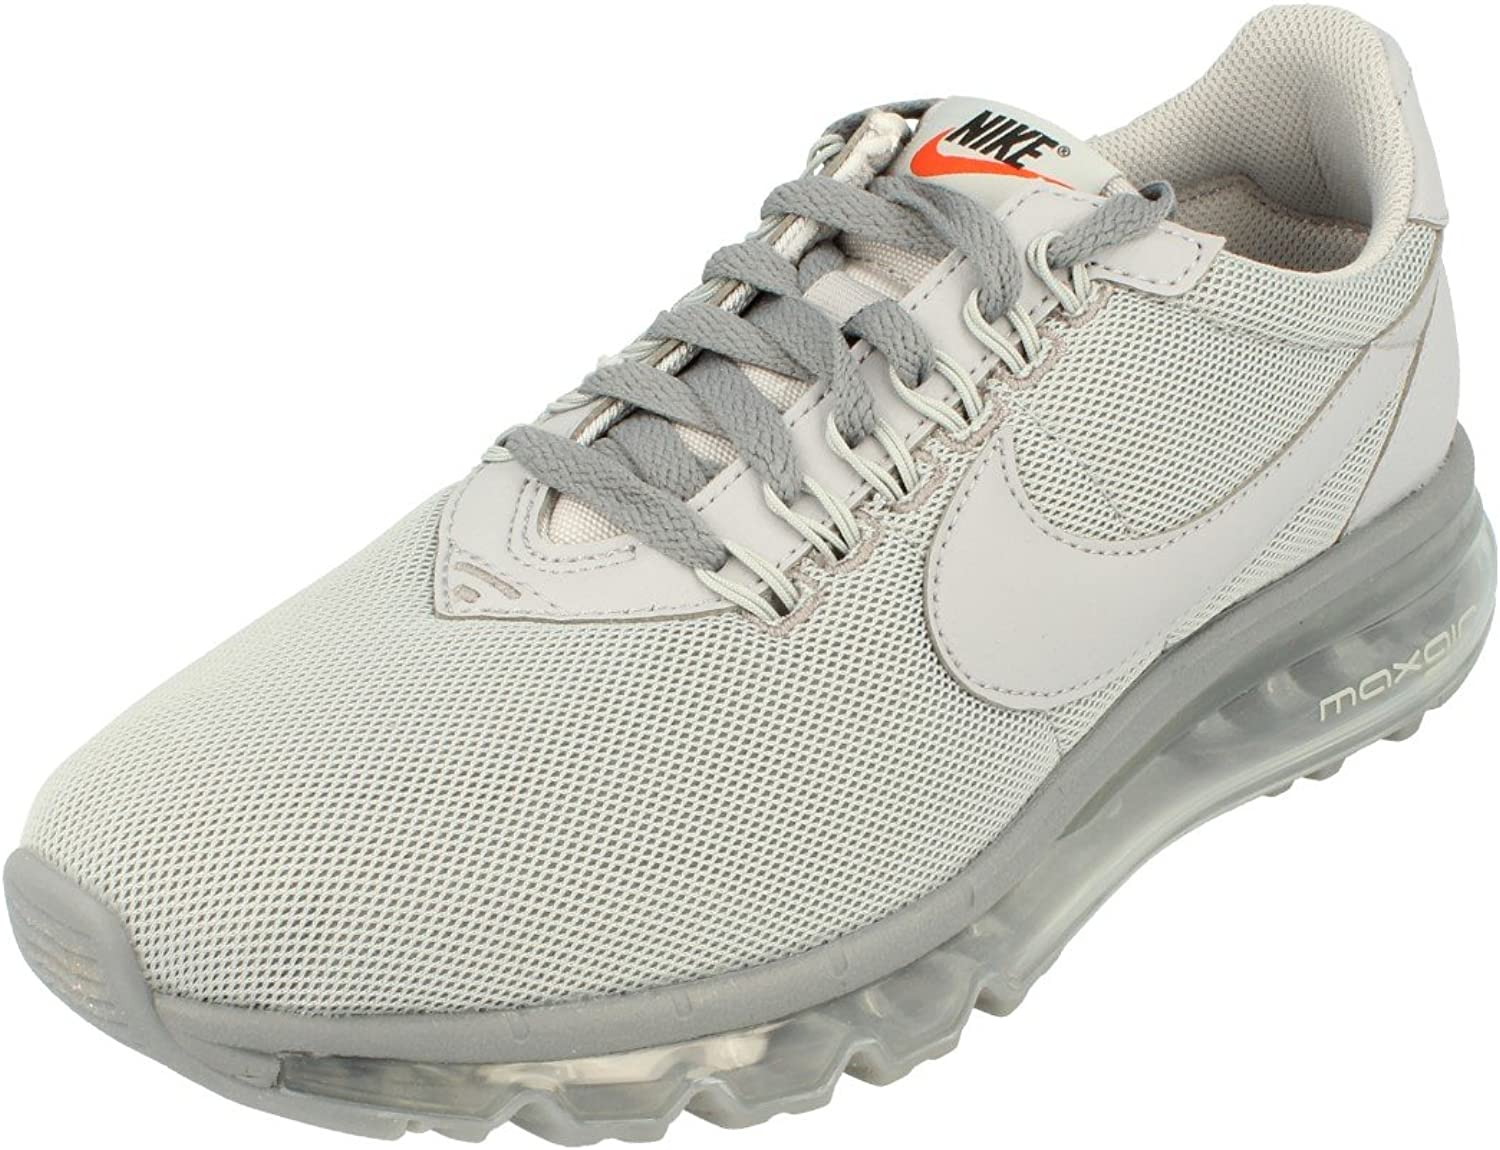 Nike Women's Air Max LD-Zero Running shoes